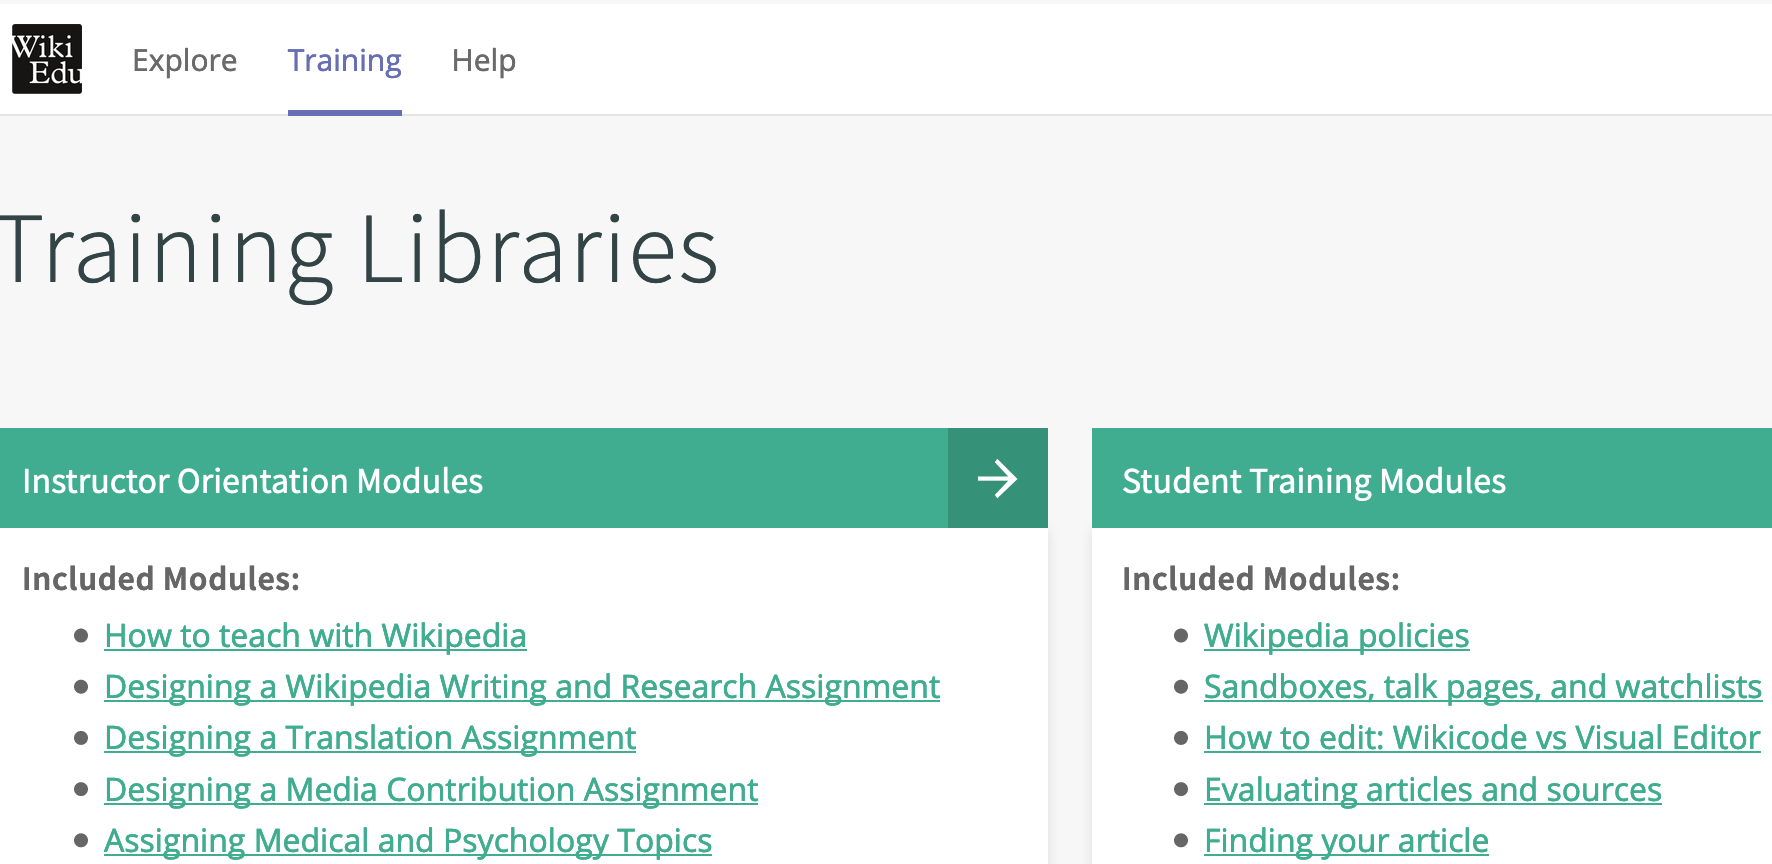 Wiki Edu Training Libraries